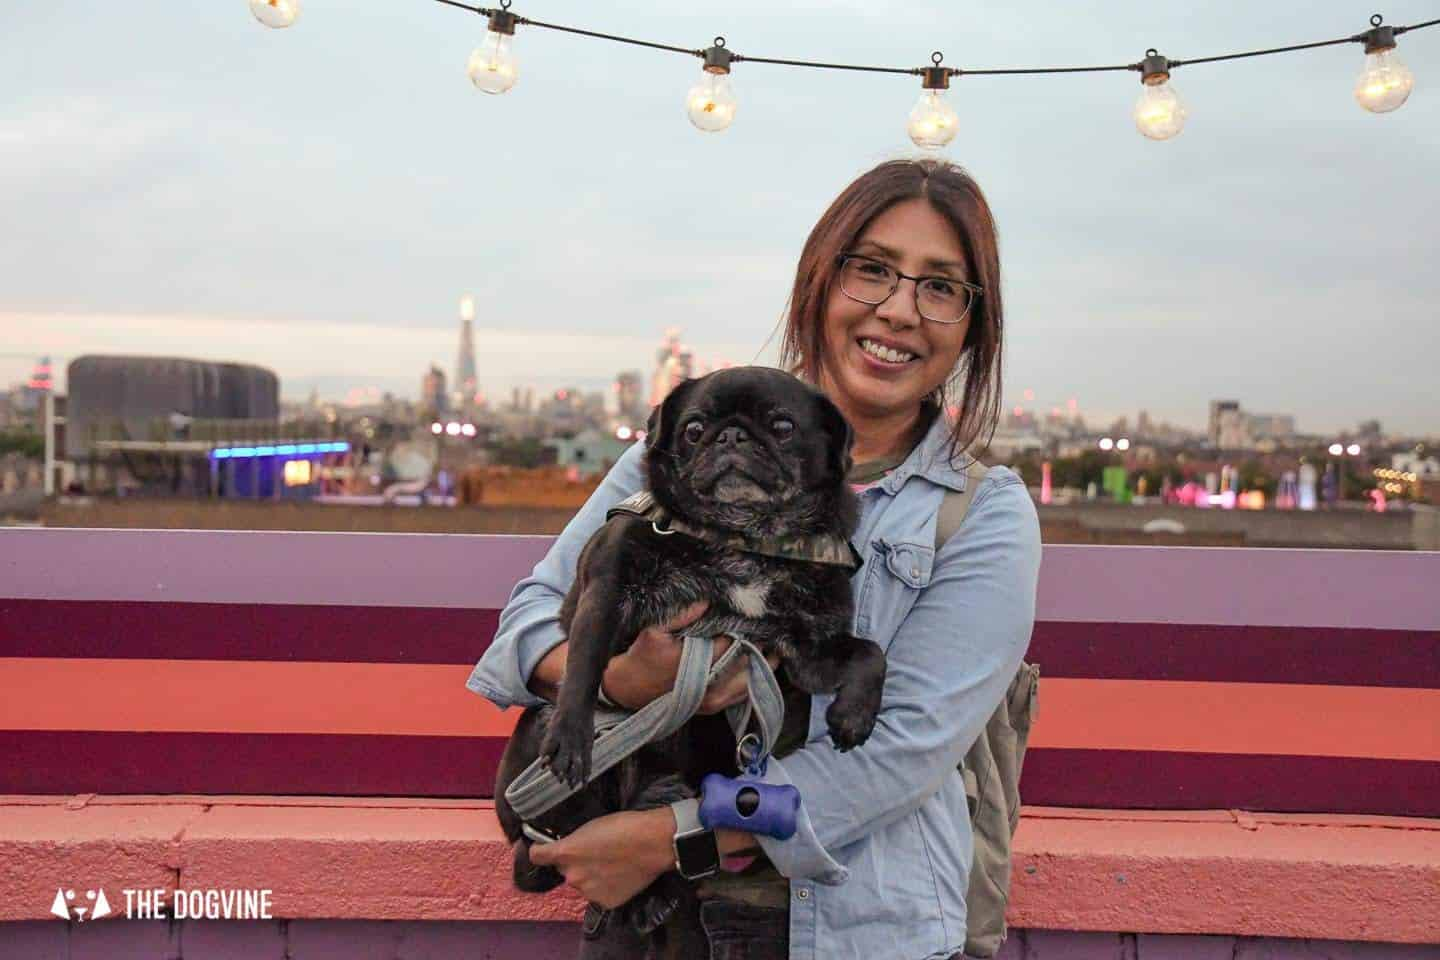 Spectacular Movie Moments at the Dog-friendly Rooftop Film Club 50